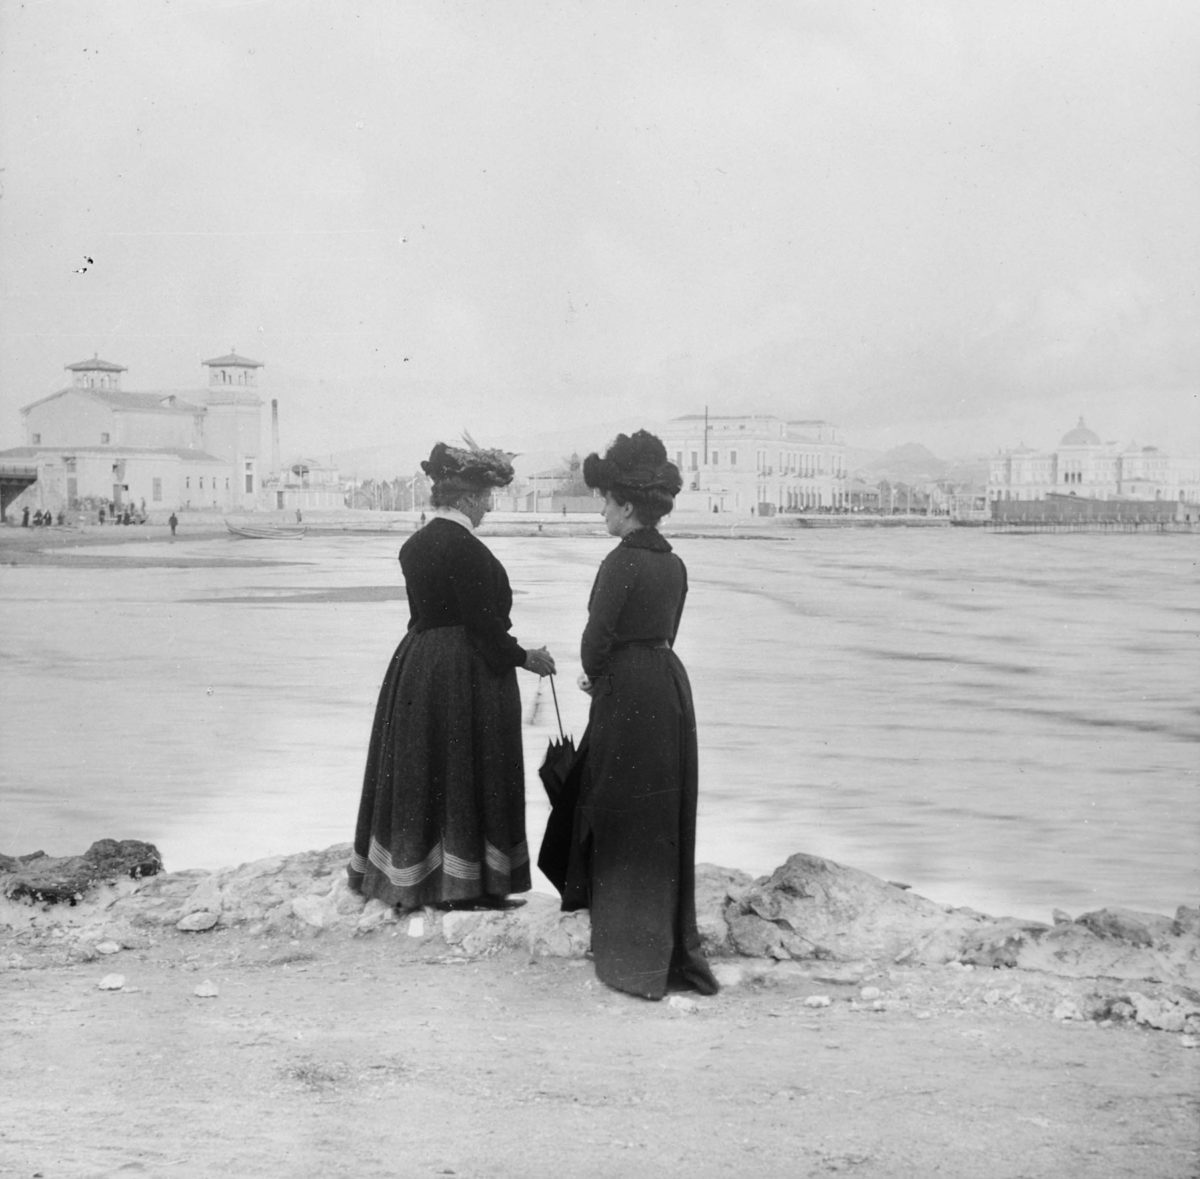 At Neo Faliro. In the background can be seen, from left to right, the new theatre, built in 1896, the metro station hotel with the third floor extension, the newly built 'Aktaion Hotel' and the pier with the changing cabanas.